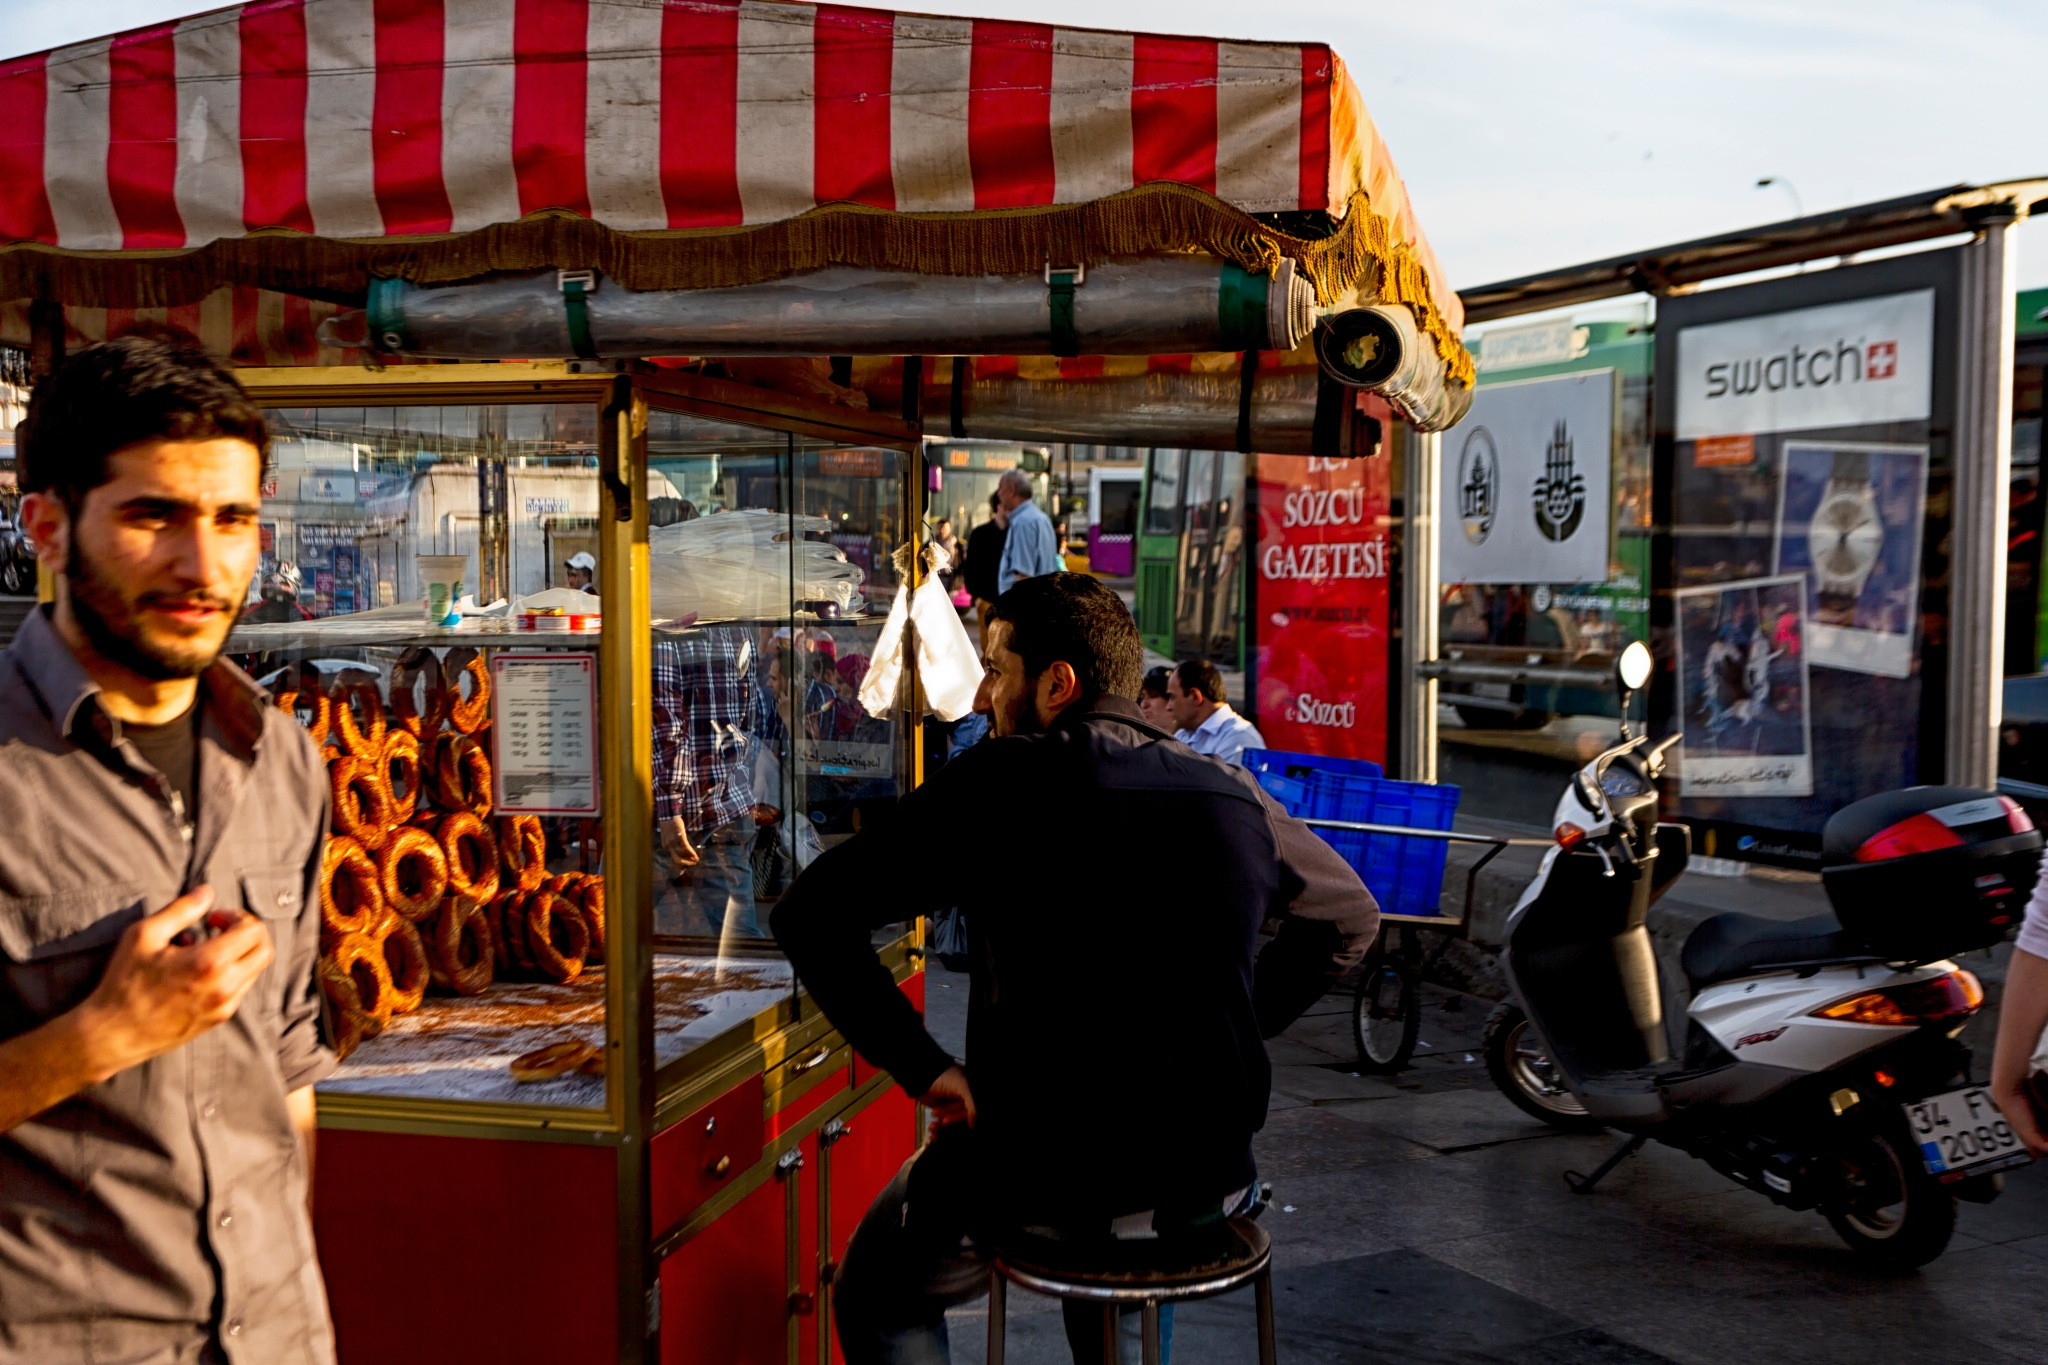 STREET FOOD by paolotomaselloct